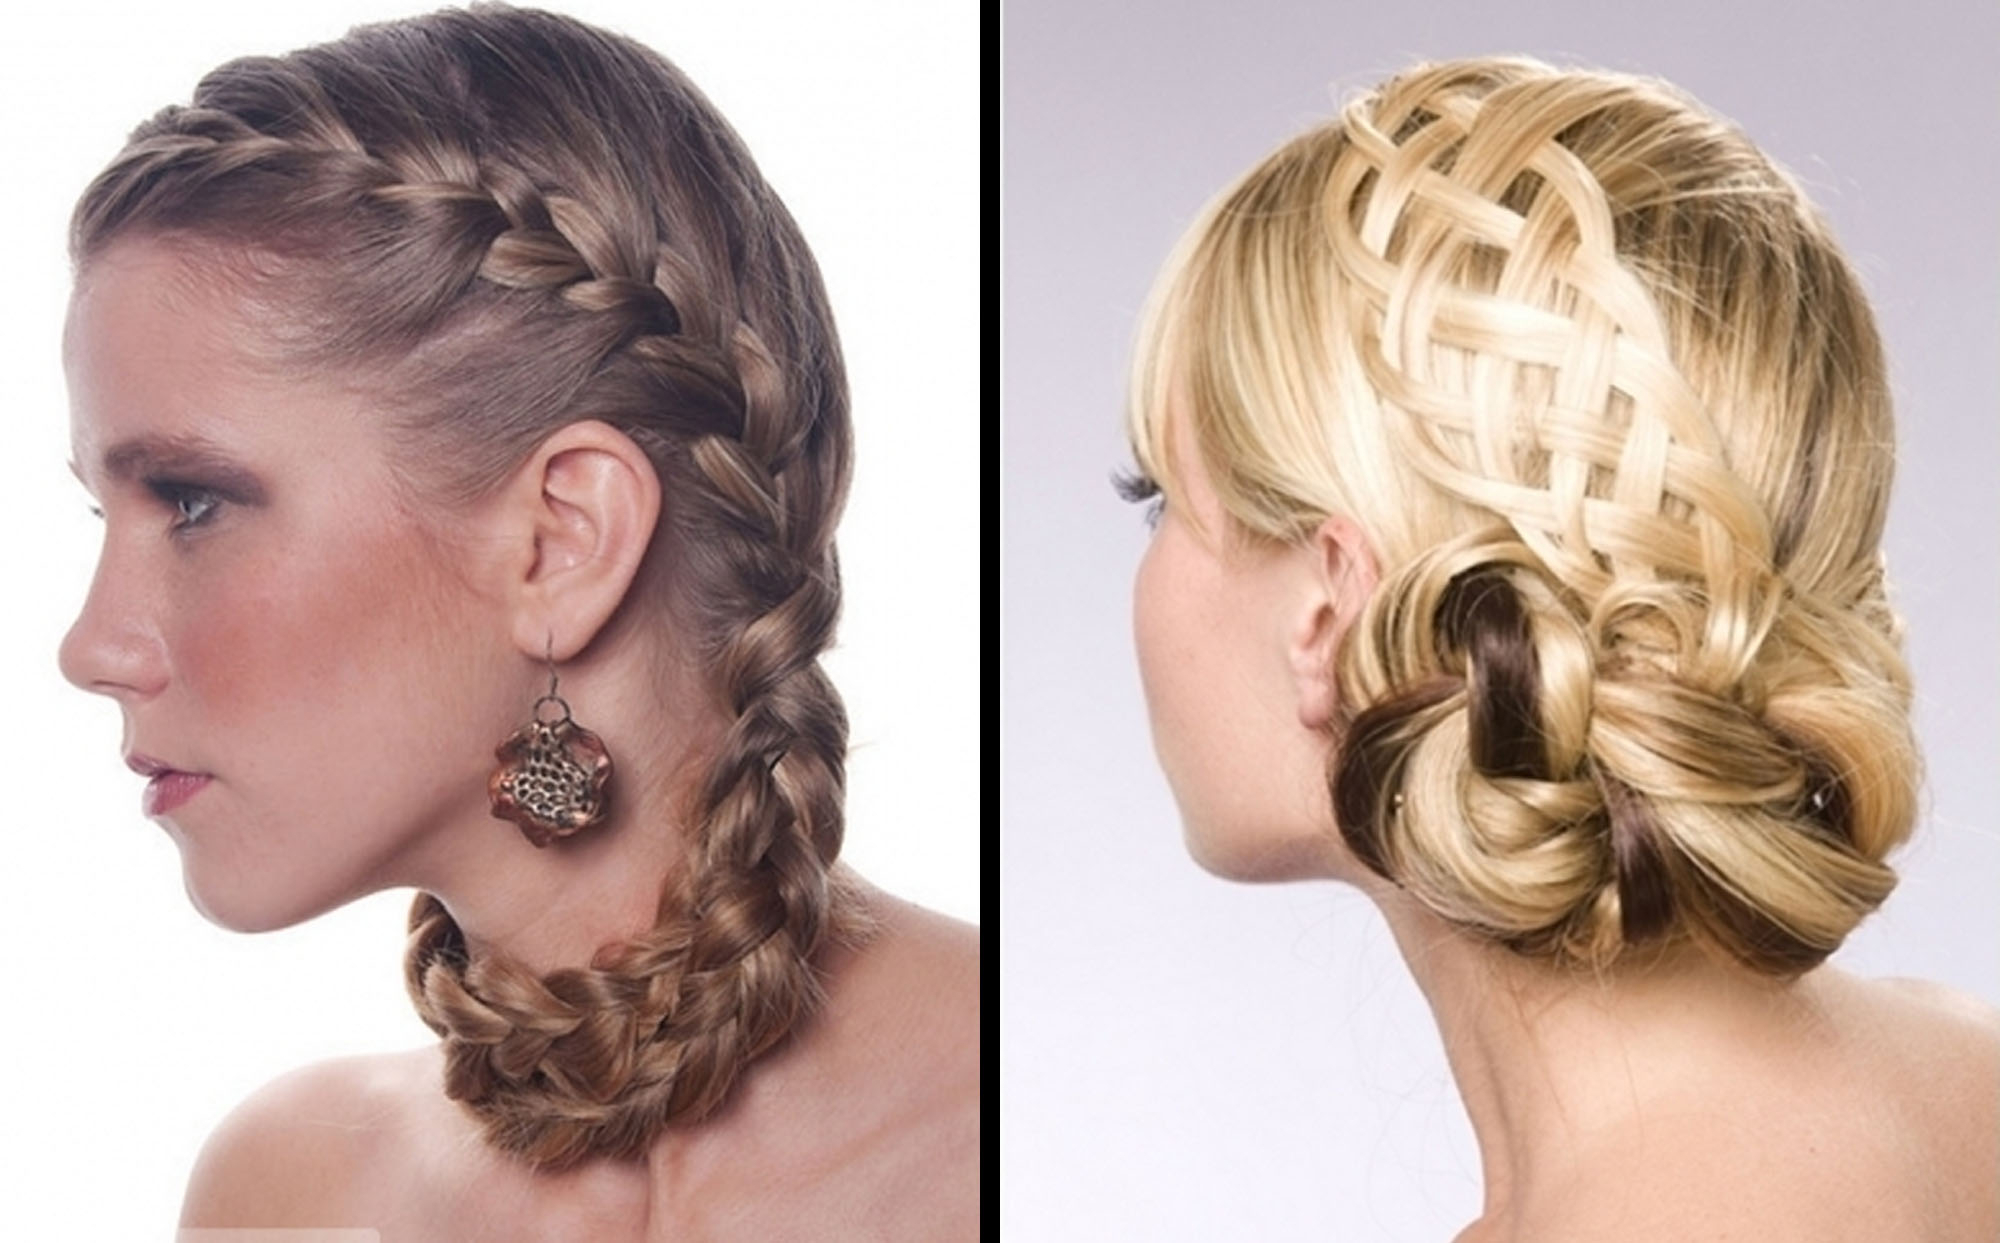 Homecoming Hairstyles For Medium Length Hair – Hairstyle For Women & Man Throughout Homecoming Short Hairstyles (View 18 of 25)